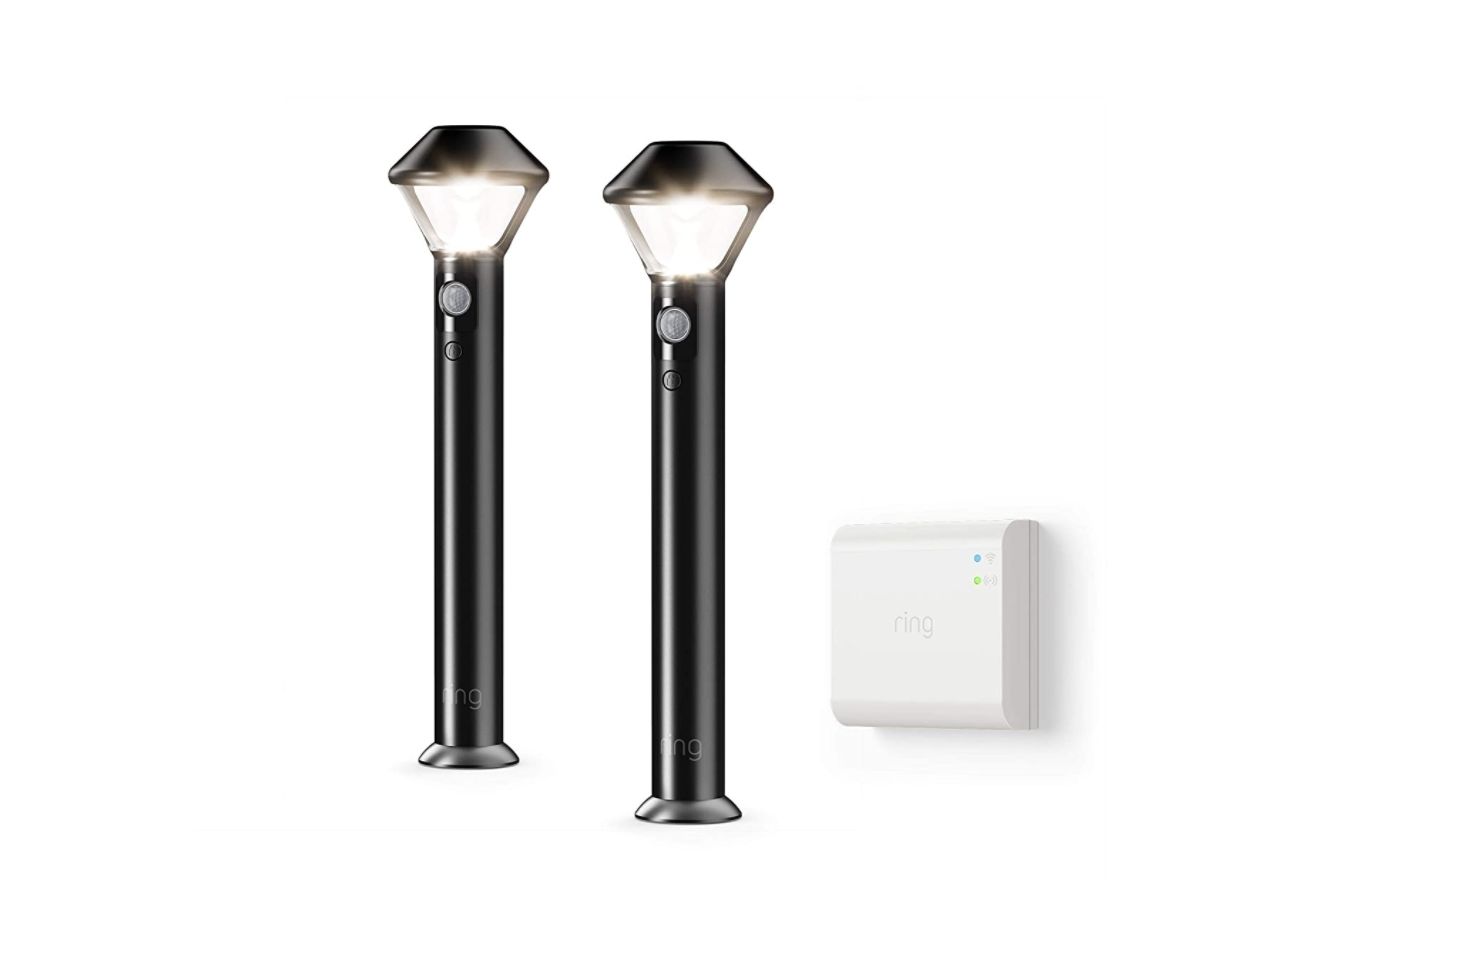 Make your walkway more visible with the Ring Smart Pathlight, now $18 Off